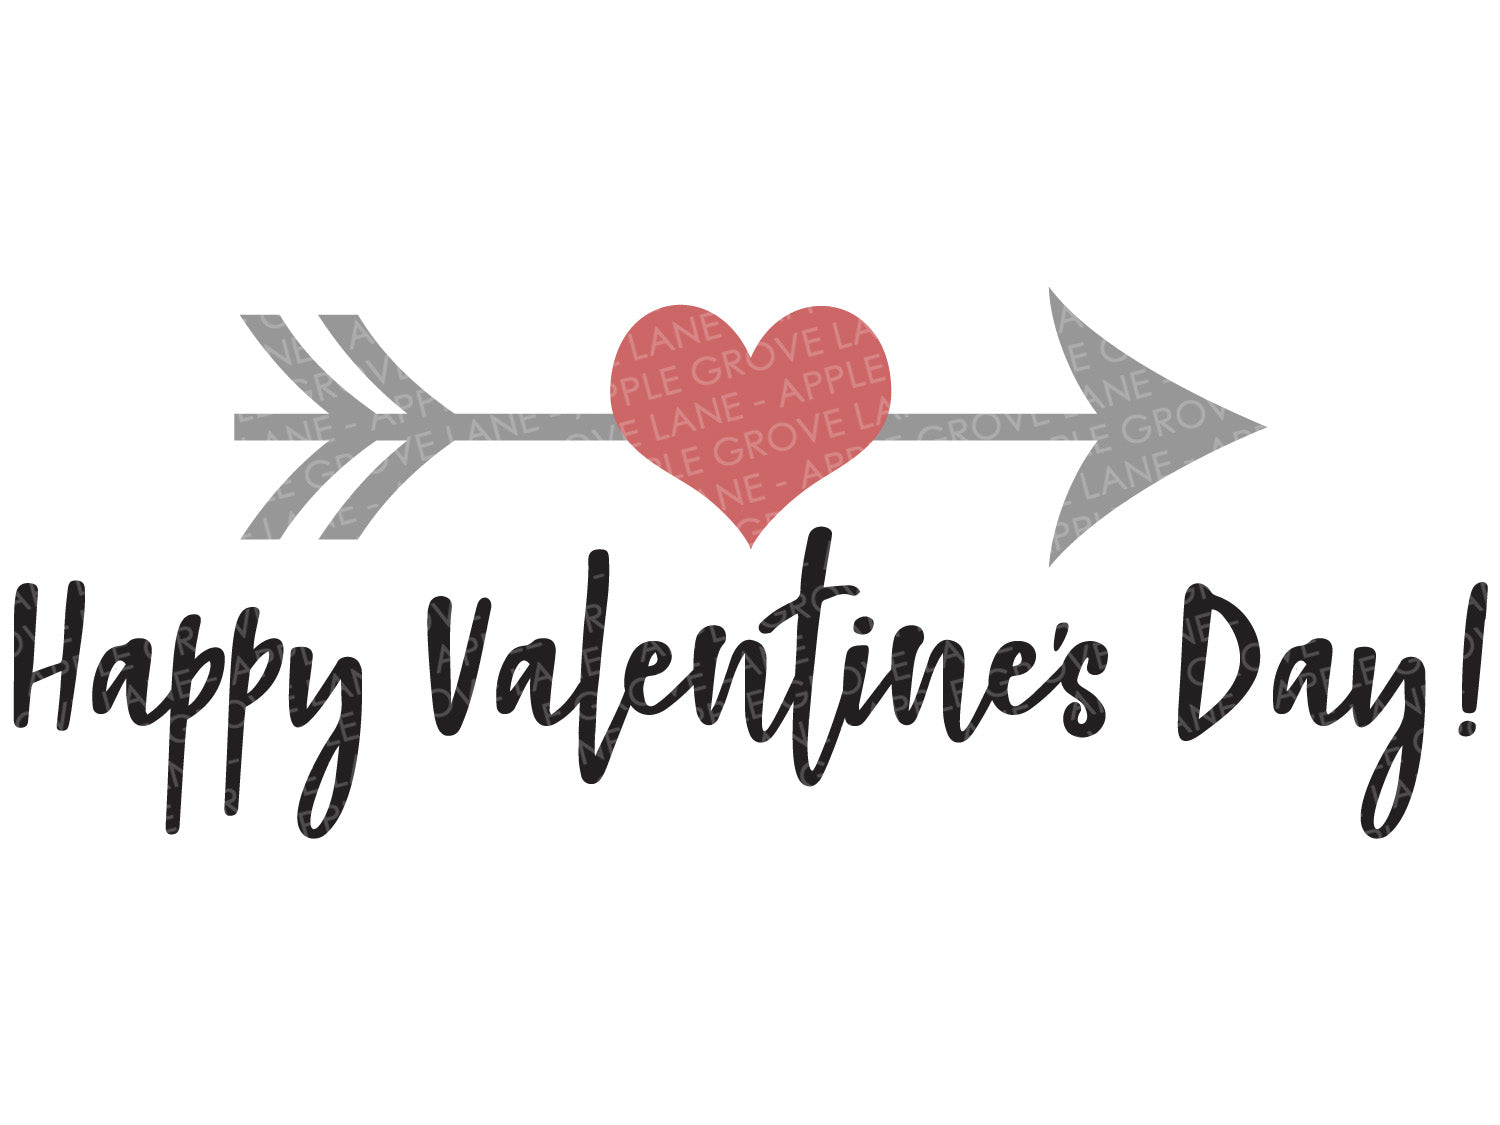 Happy Valentines Day Svg Valentine Svg Valentines Day Svg Heart Apple Grove Lane